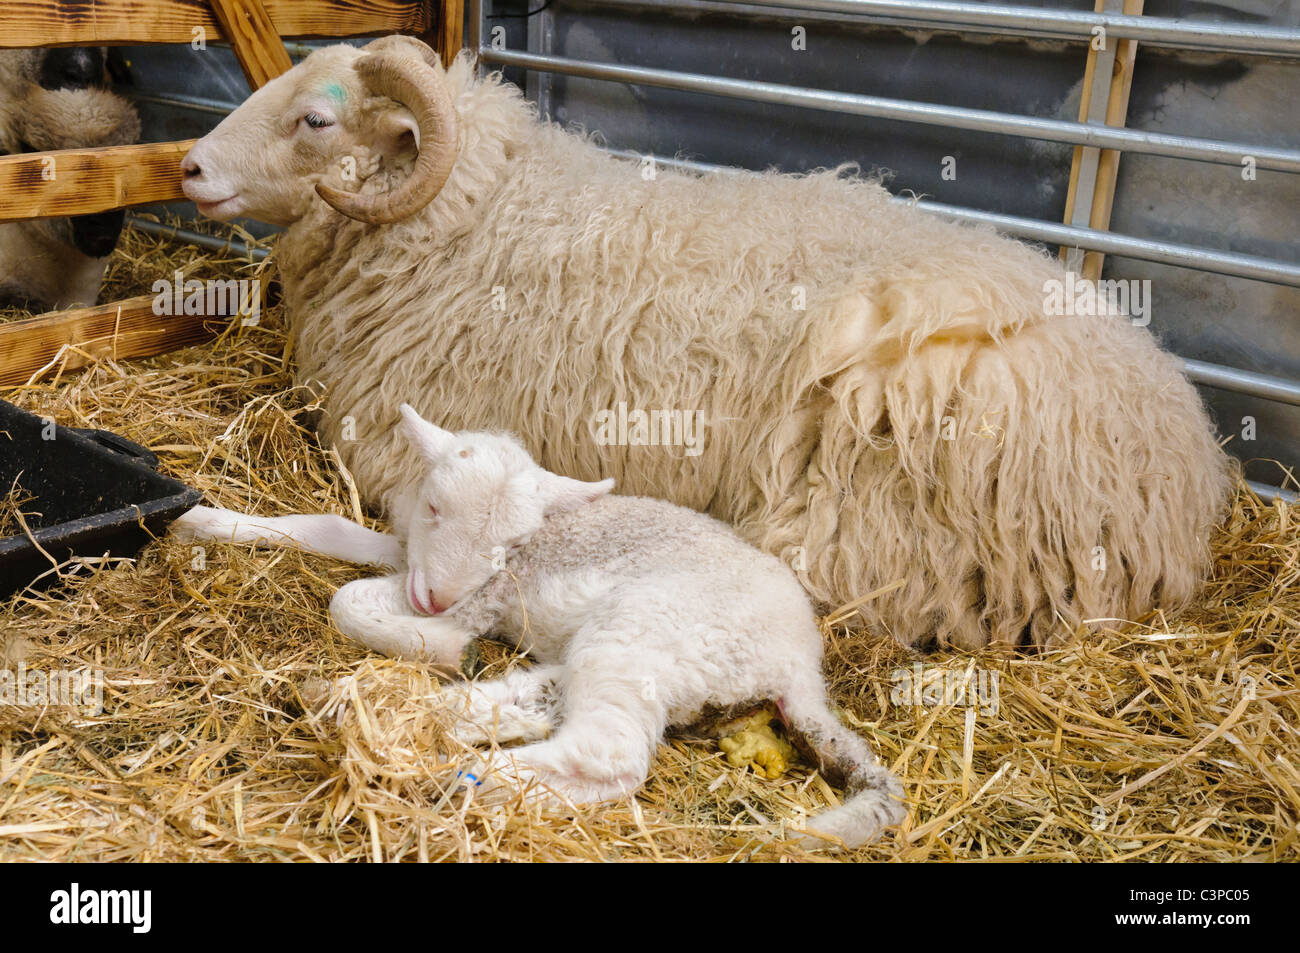 Ewe with newborn lamb - Stock Image